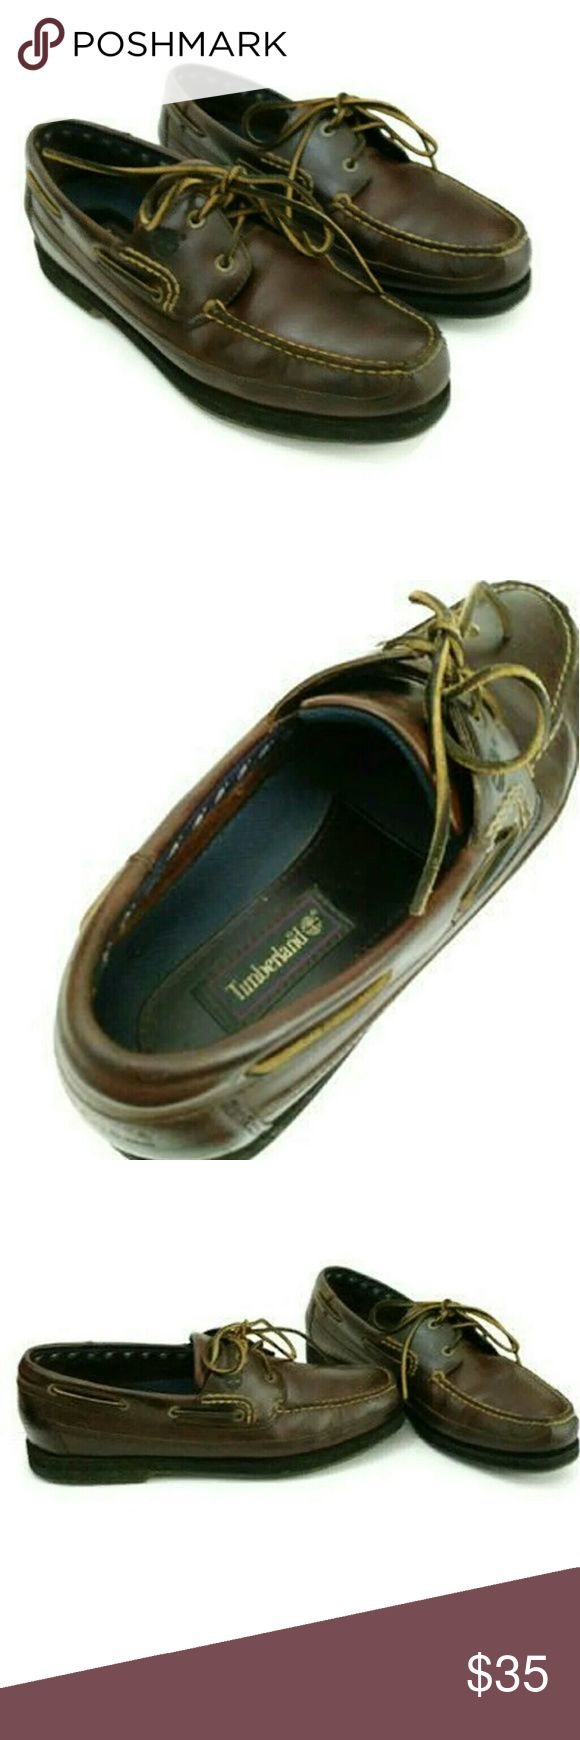 Timberland dark brown boat shoes size 14 These shoes are in very good condition with some very minor signs of wear on the sole, non slip non marking soles. Great leather!! Size 14 Timberland Shoes Boat Shoes